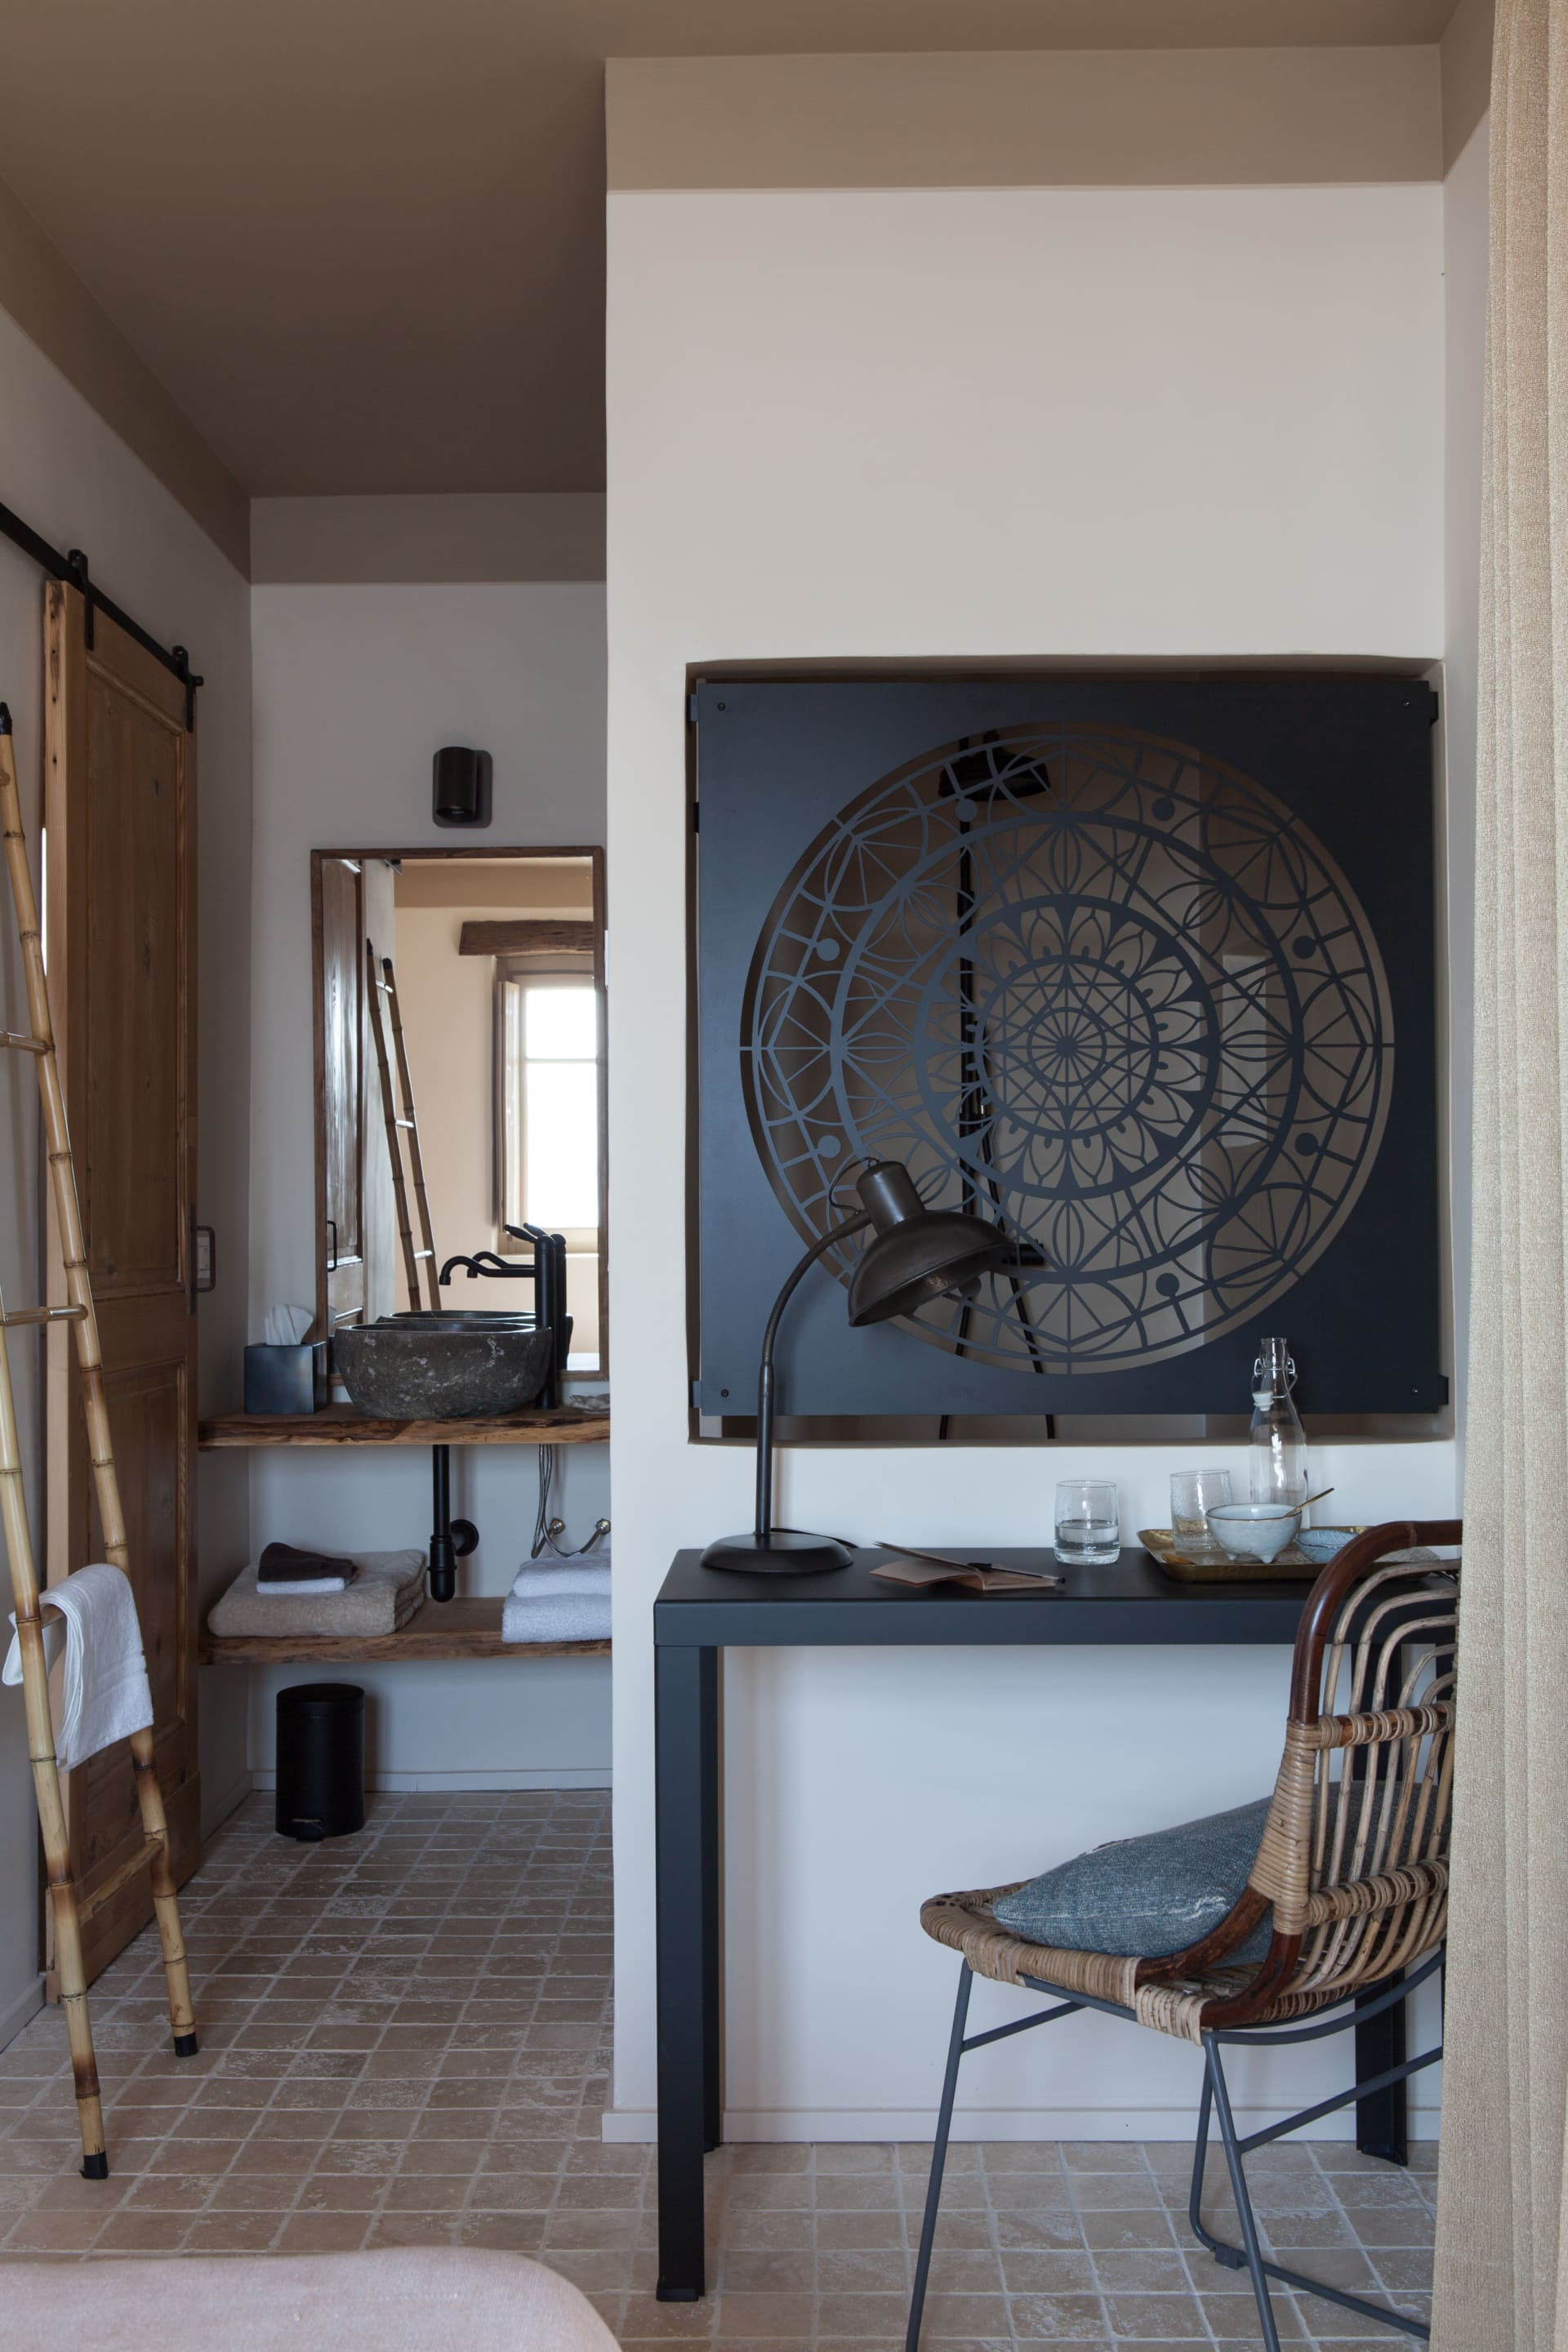 Many rooms and appartments have a different interior. Alldesigned by Reineke Antvelink Interior Design with theuse of natural, local and sustainable materials.